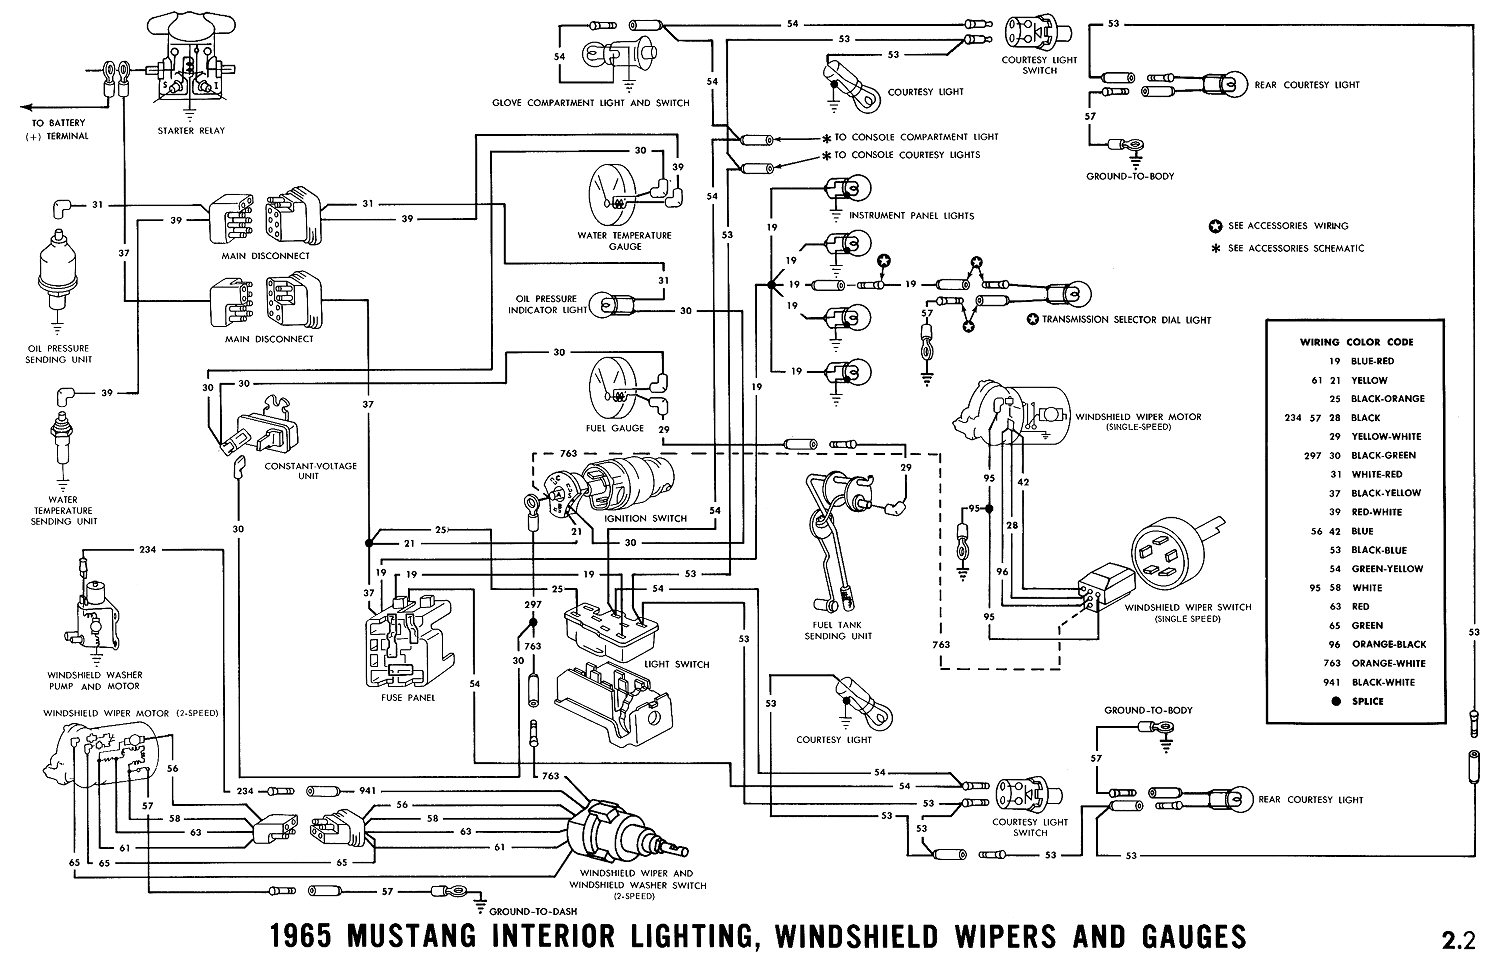 1970 Mustang Instrument Wiring Diagram Reinvent Your Amc Amx 1969 Heater Schematics Diagrams U2022 Rh Parntesis Co Cluster